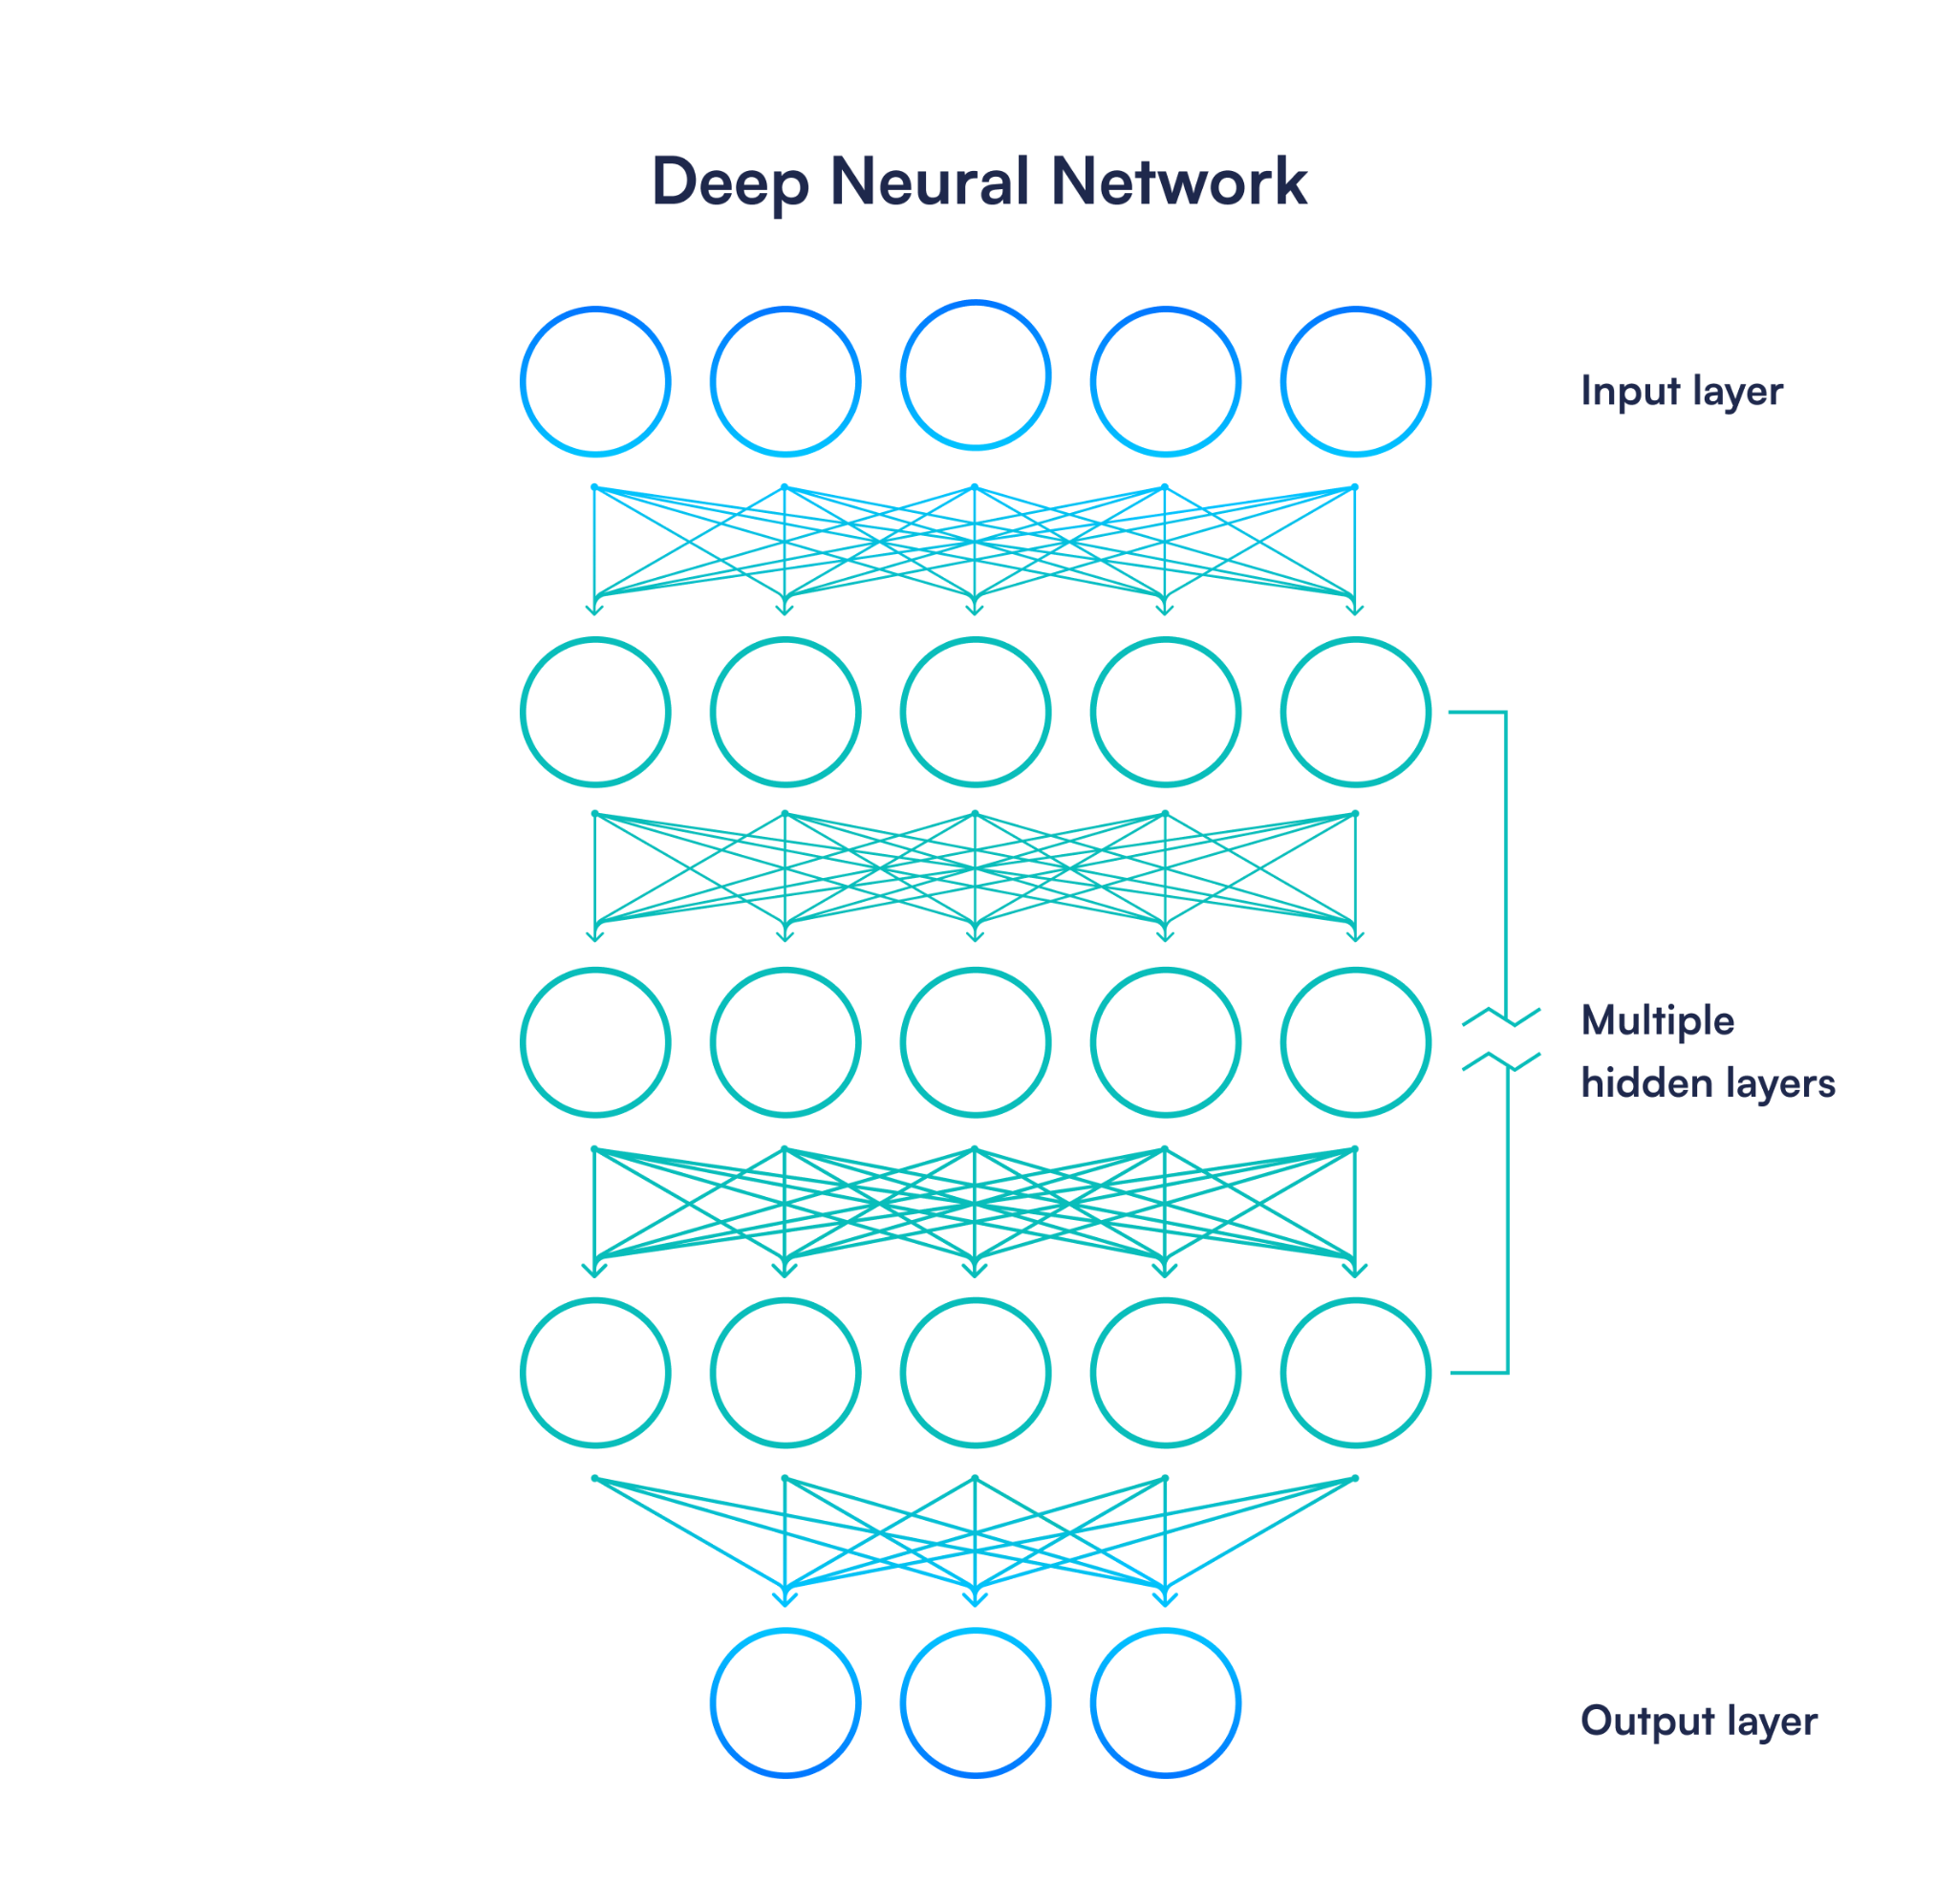 Visual representation of a deep neural network, with an input layer at the top 3 hidden layers in the middle and an output layer at the bottom.